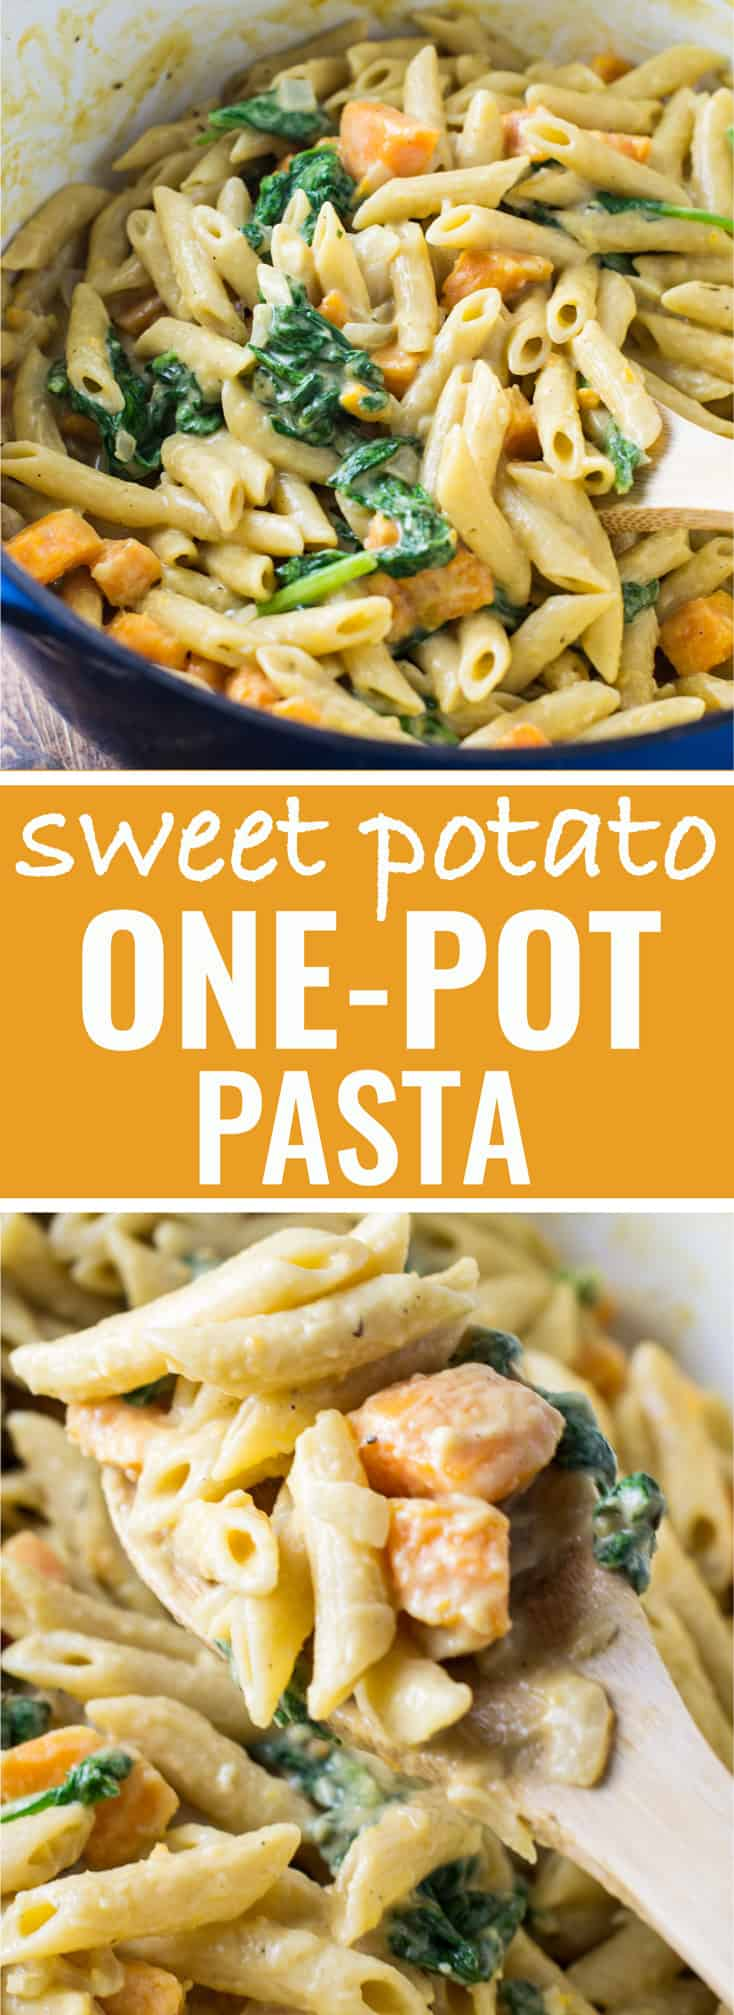 Ultra creamy One pot sweet potato and spinach recipe. You will be fighting over the leftovers! #vegetarian #onepot #sweetpotato